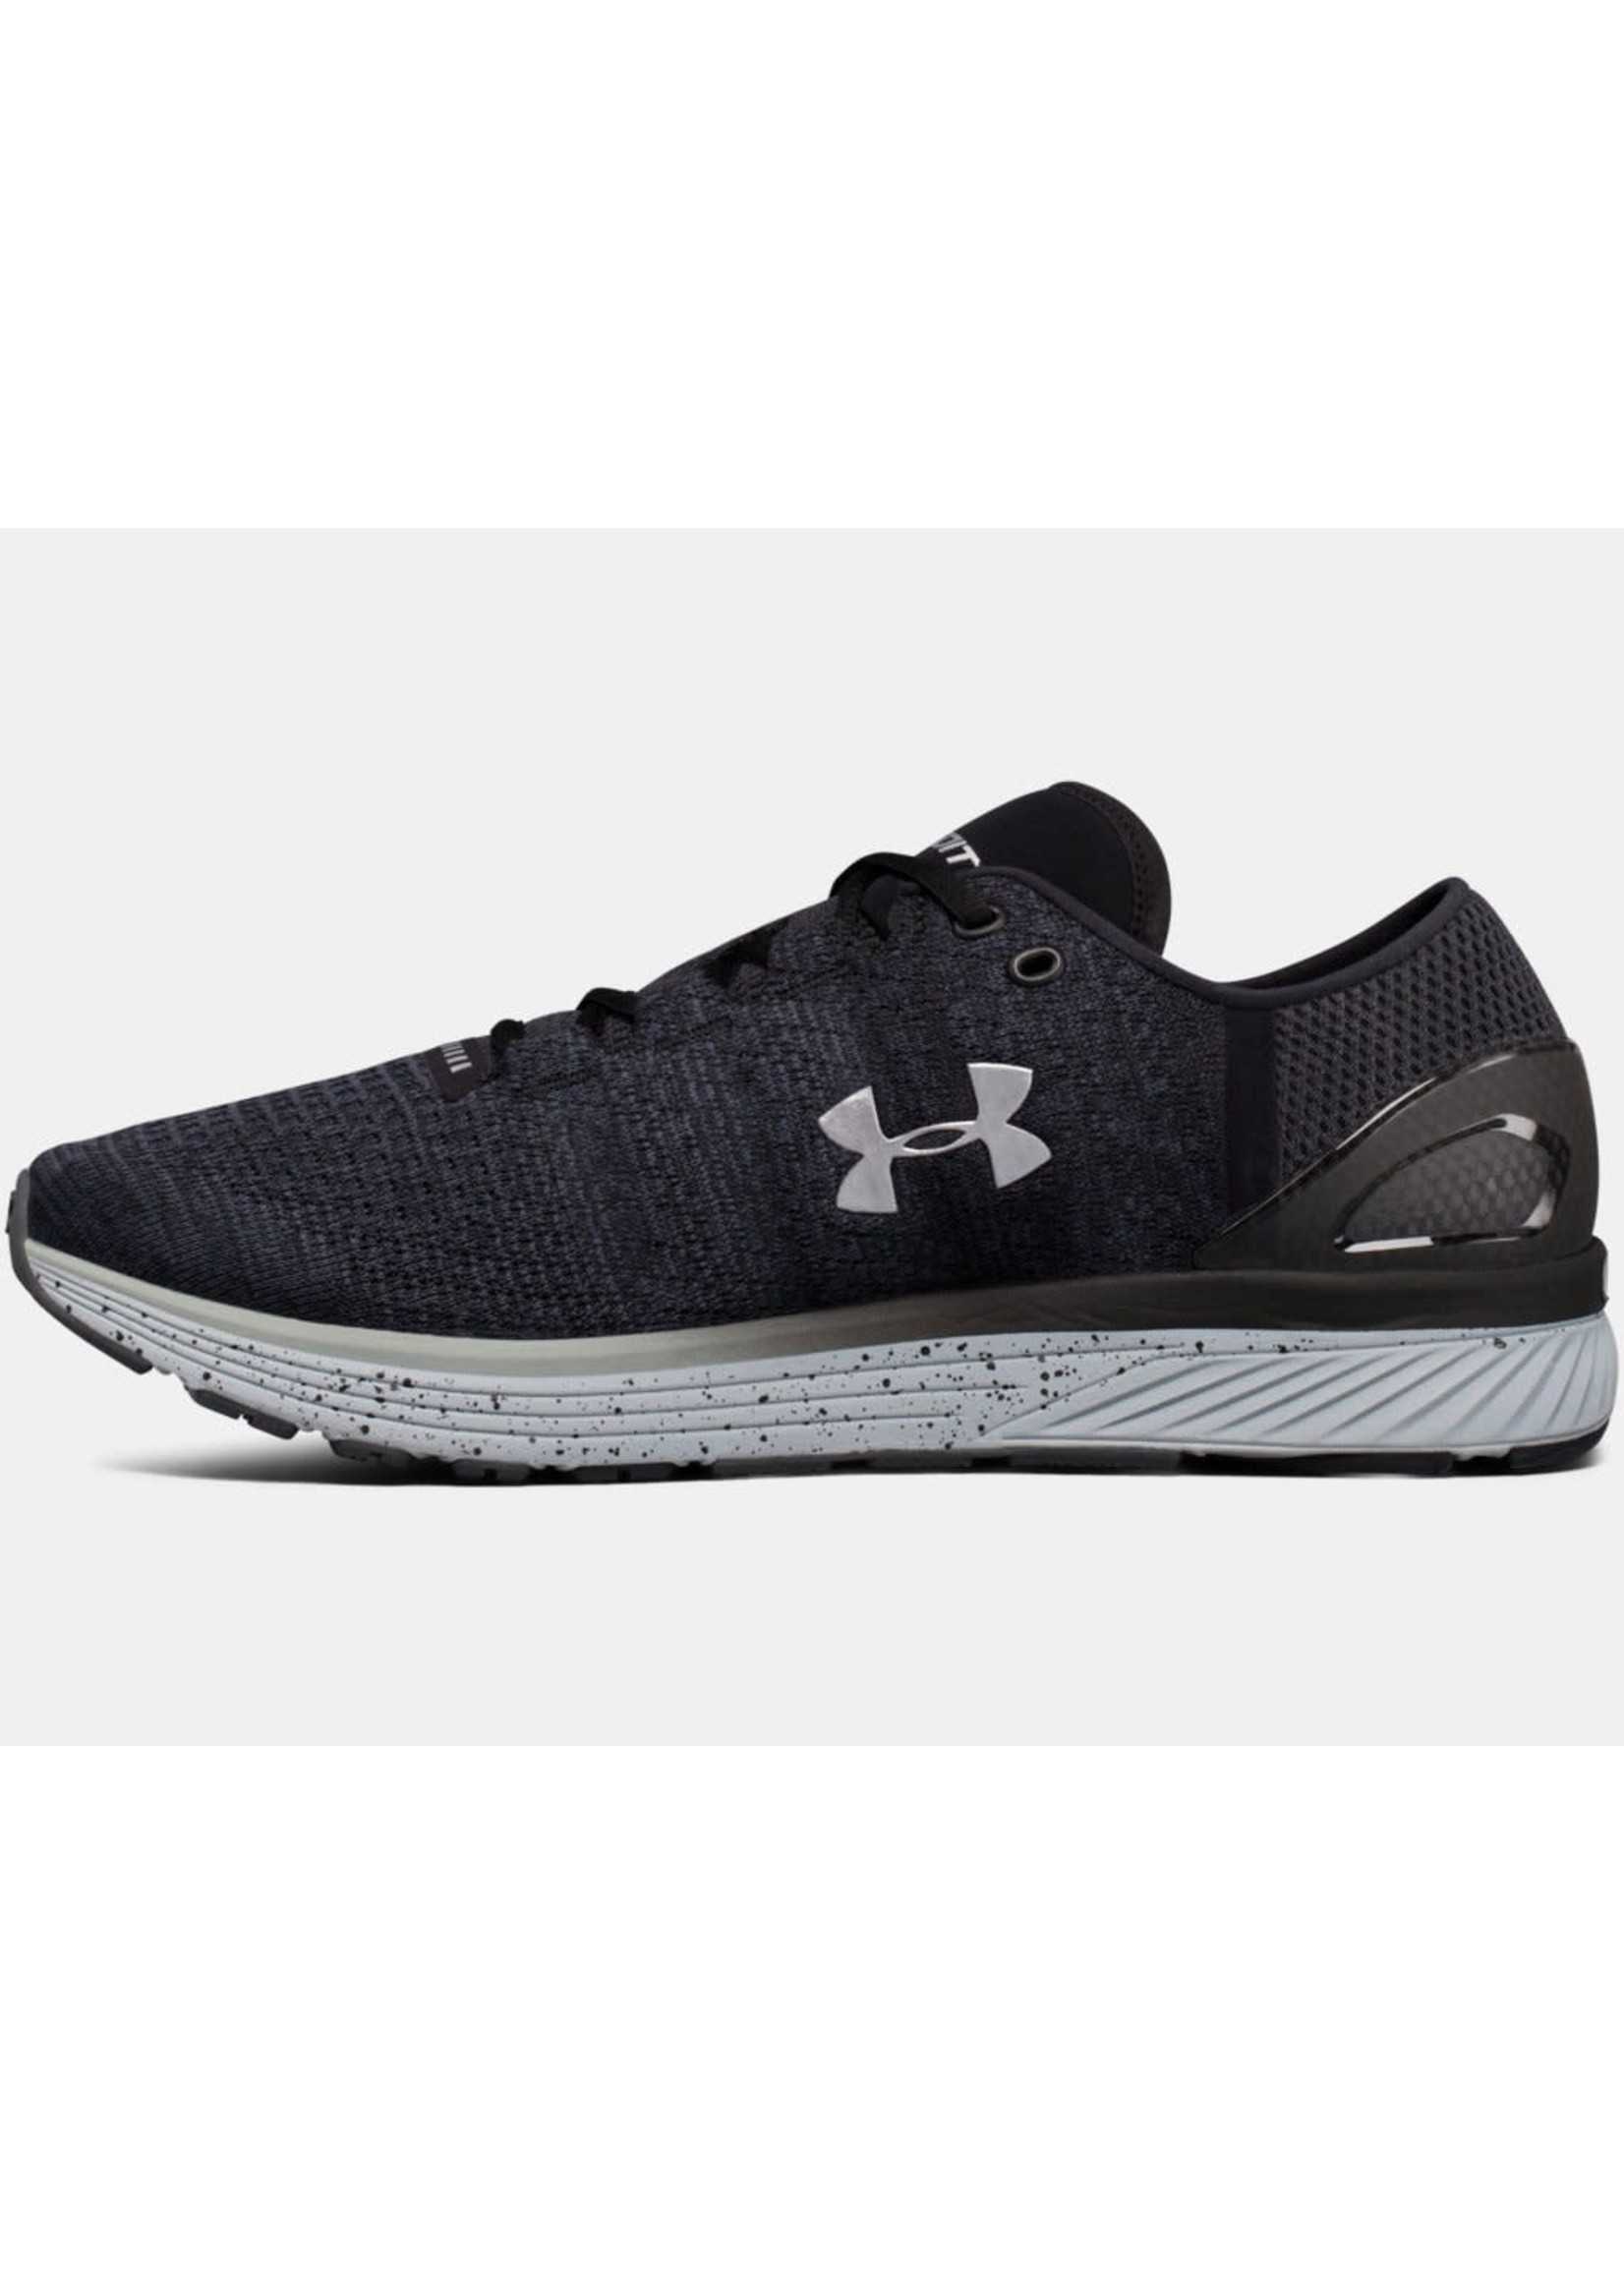 Under Armour UA CHARGED BANDIT 3 1295725